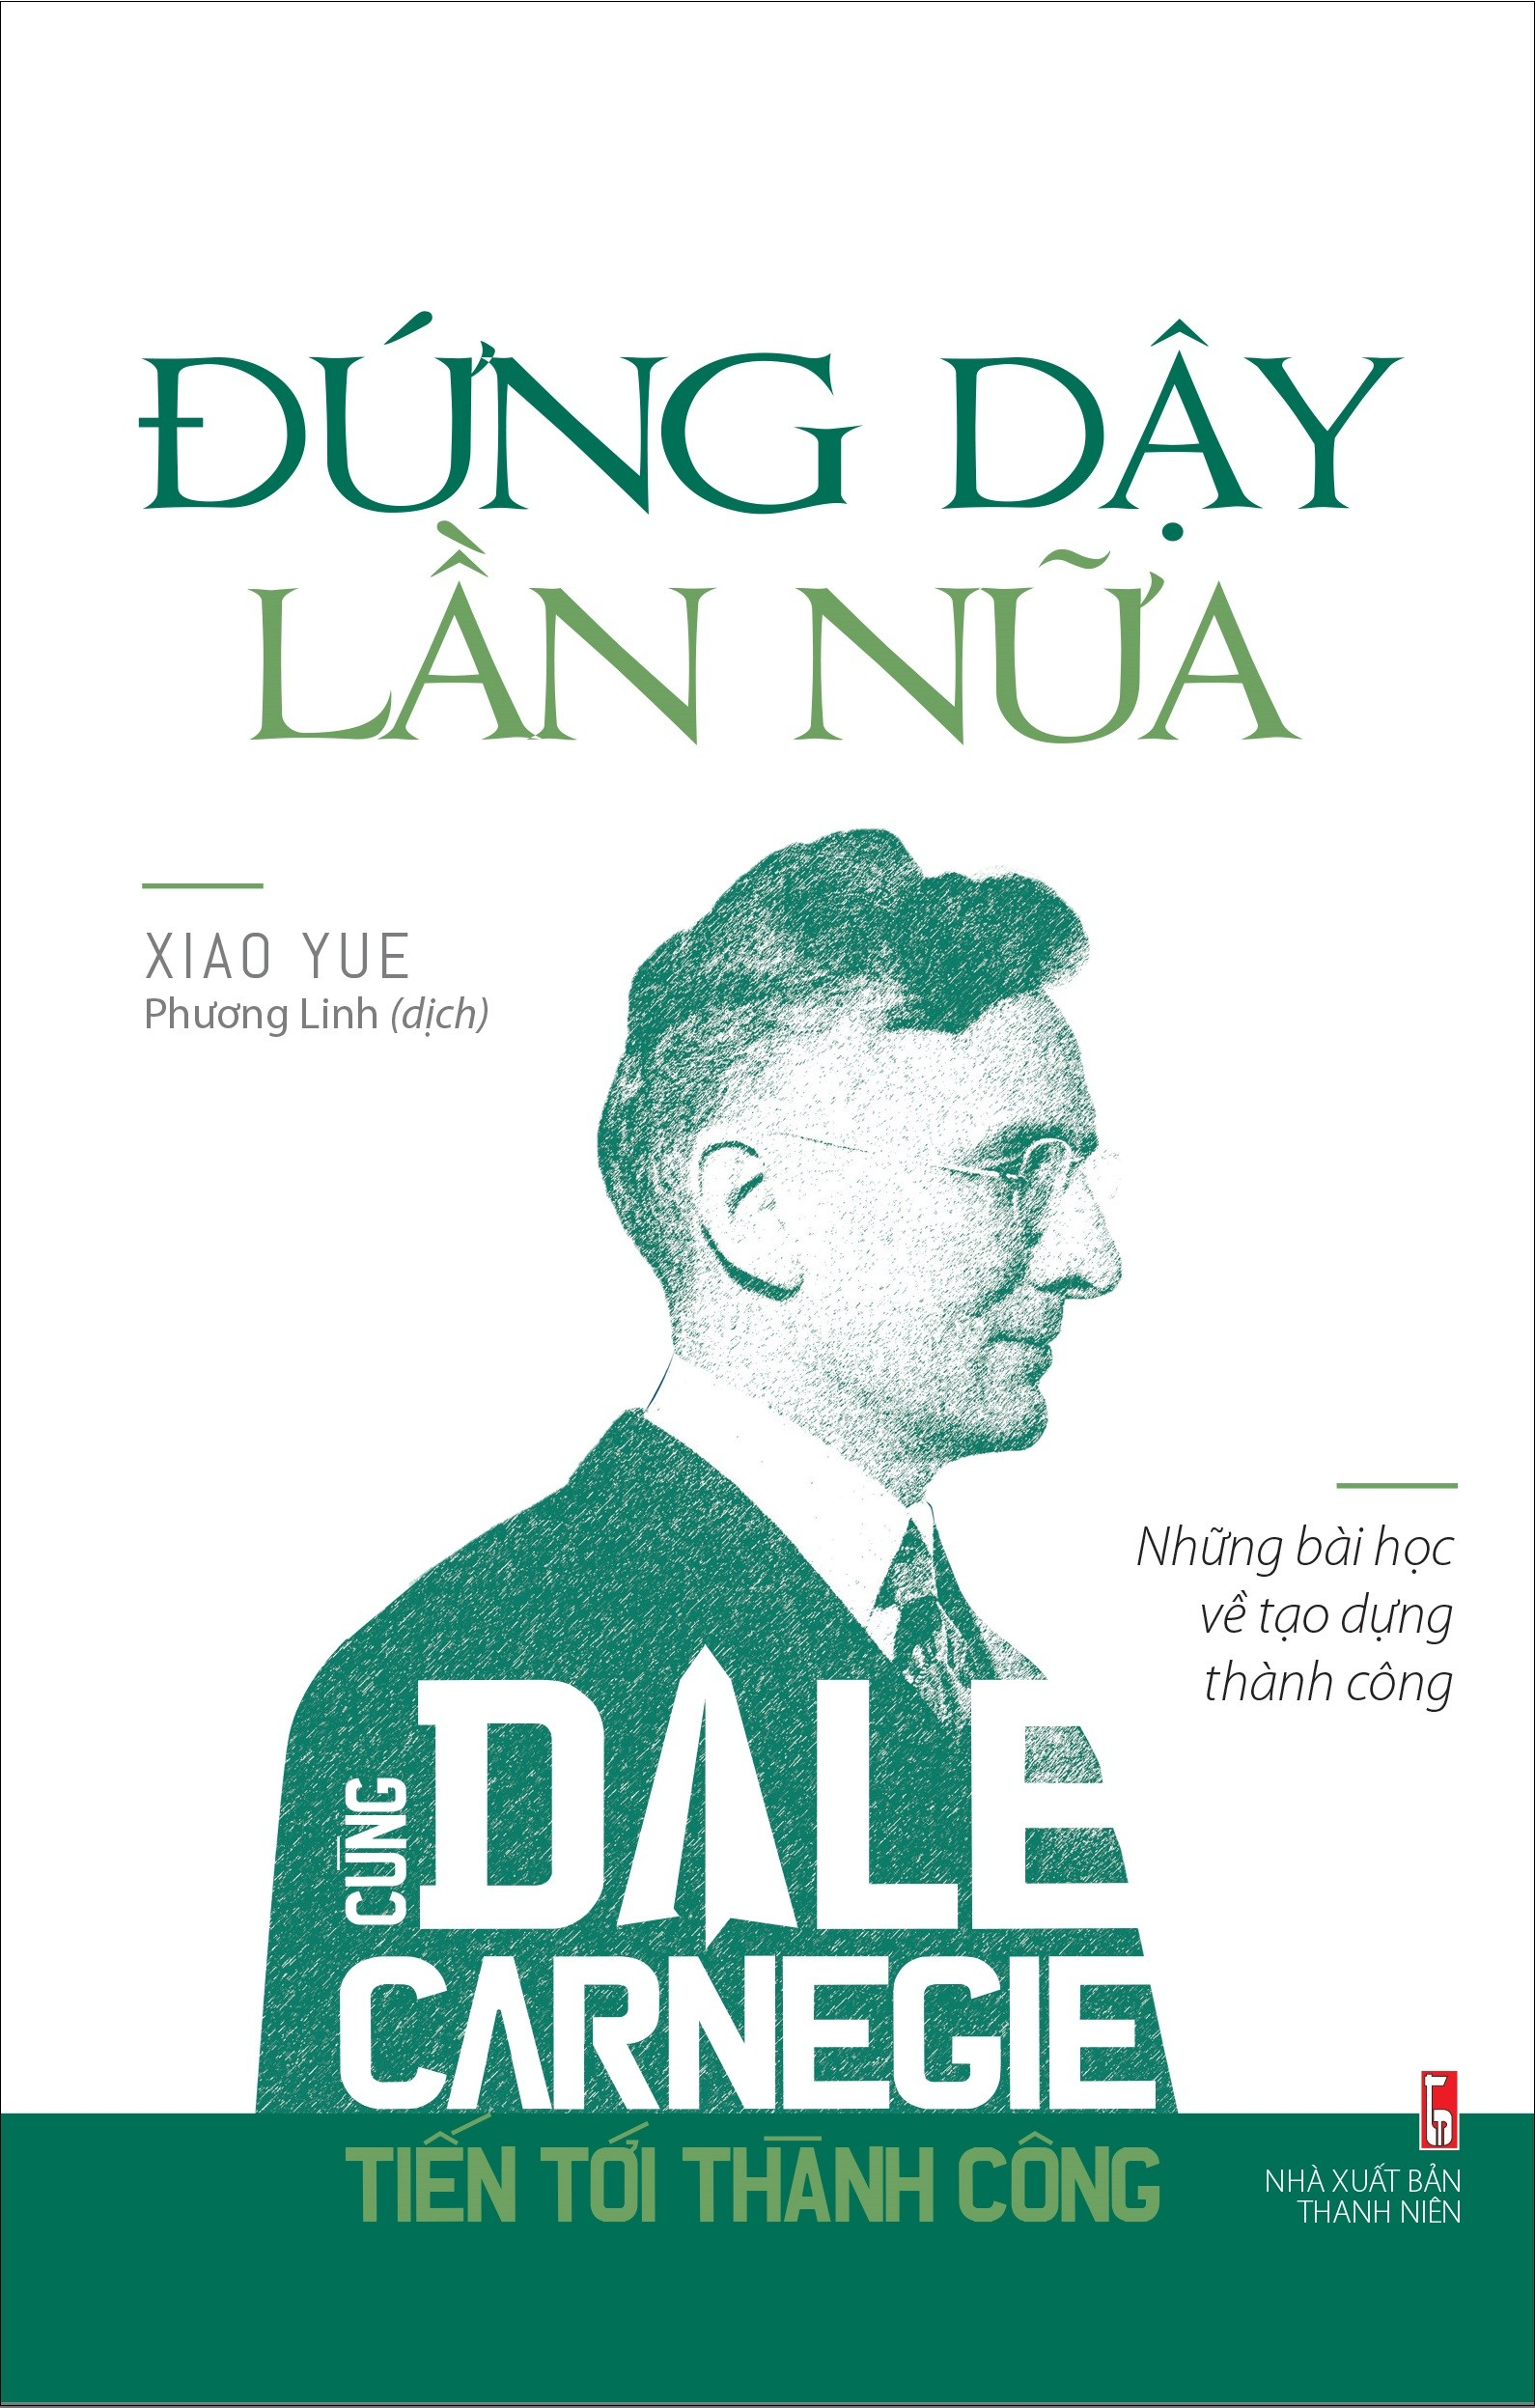 dung day lan nua - cung dale carnegie tien toi thanh cong